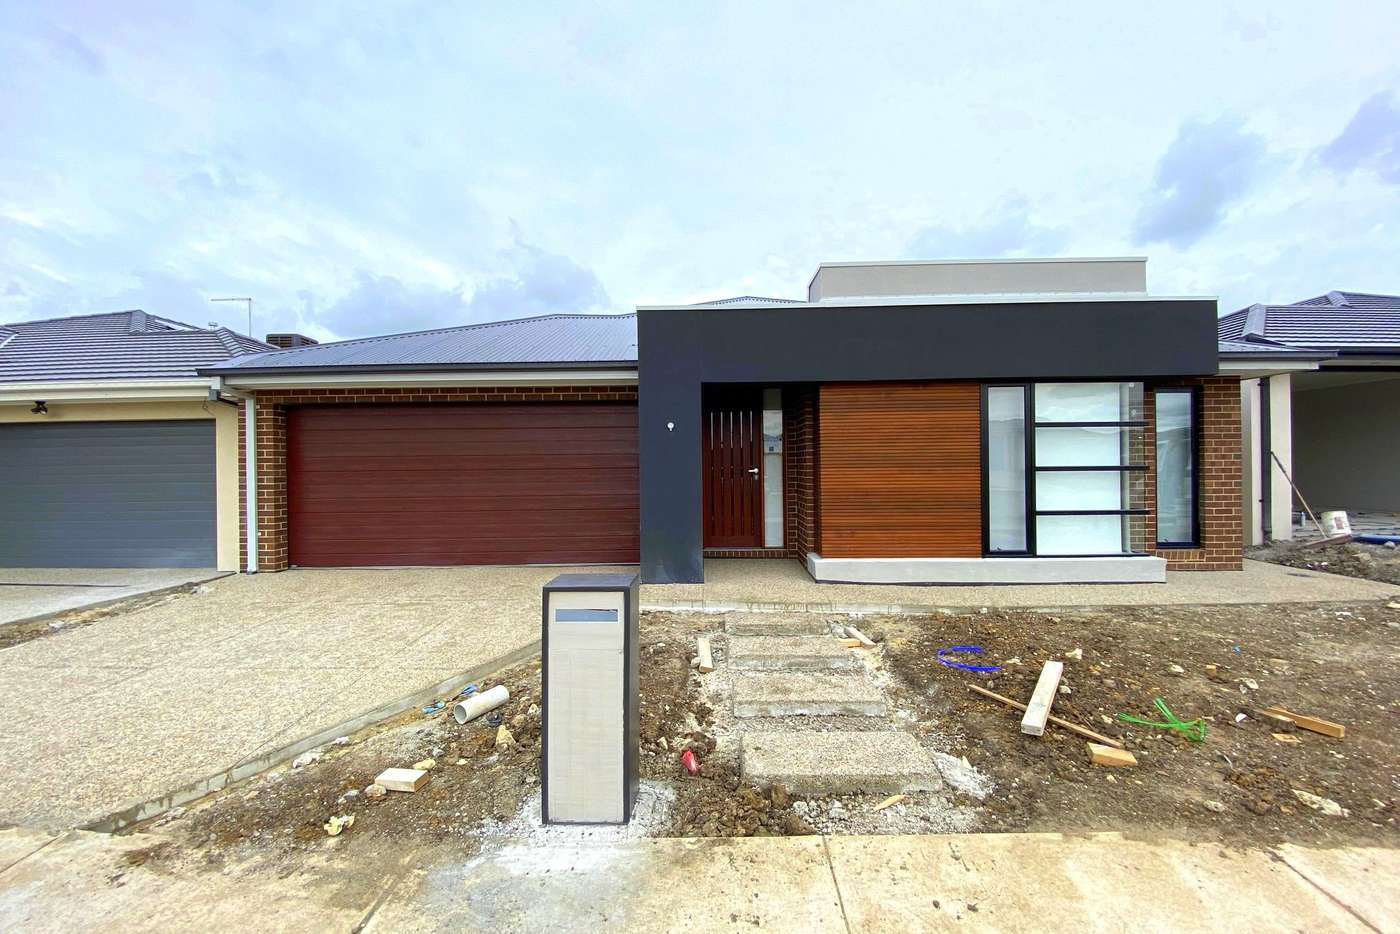 Main view of Homely house listing, 20 Coach Drive, Donnybrook VIC 3064